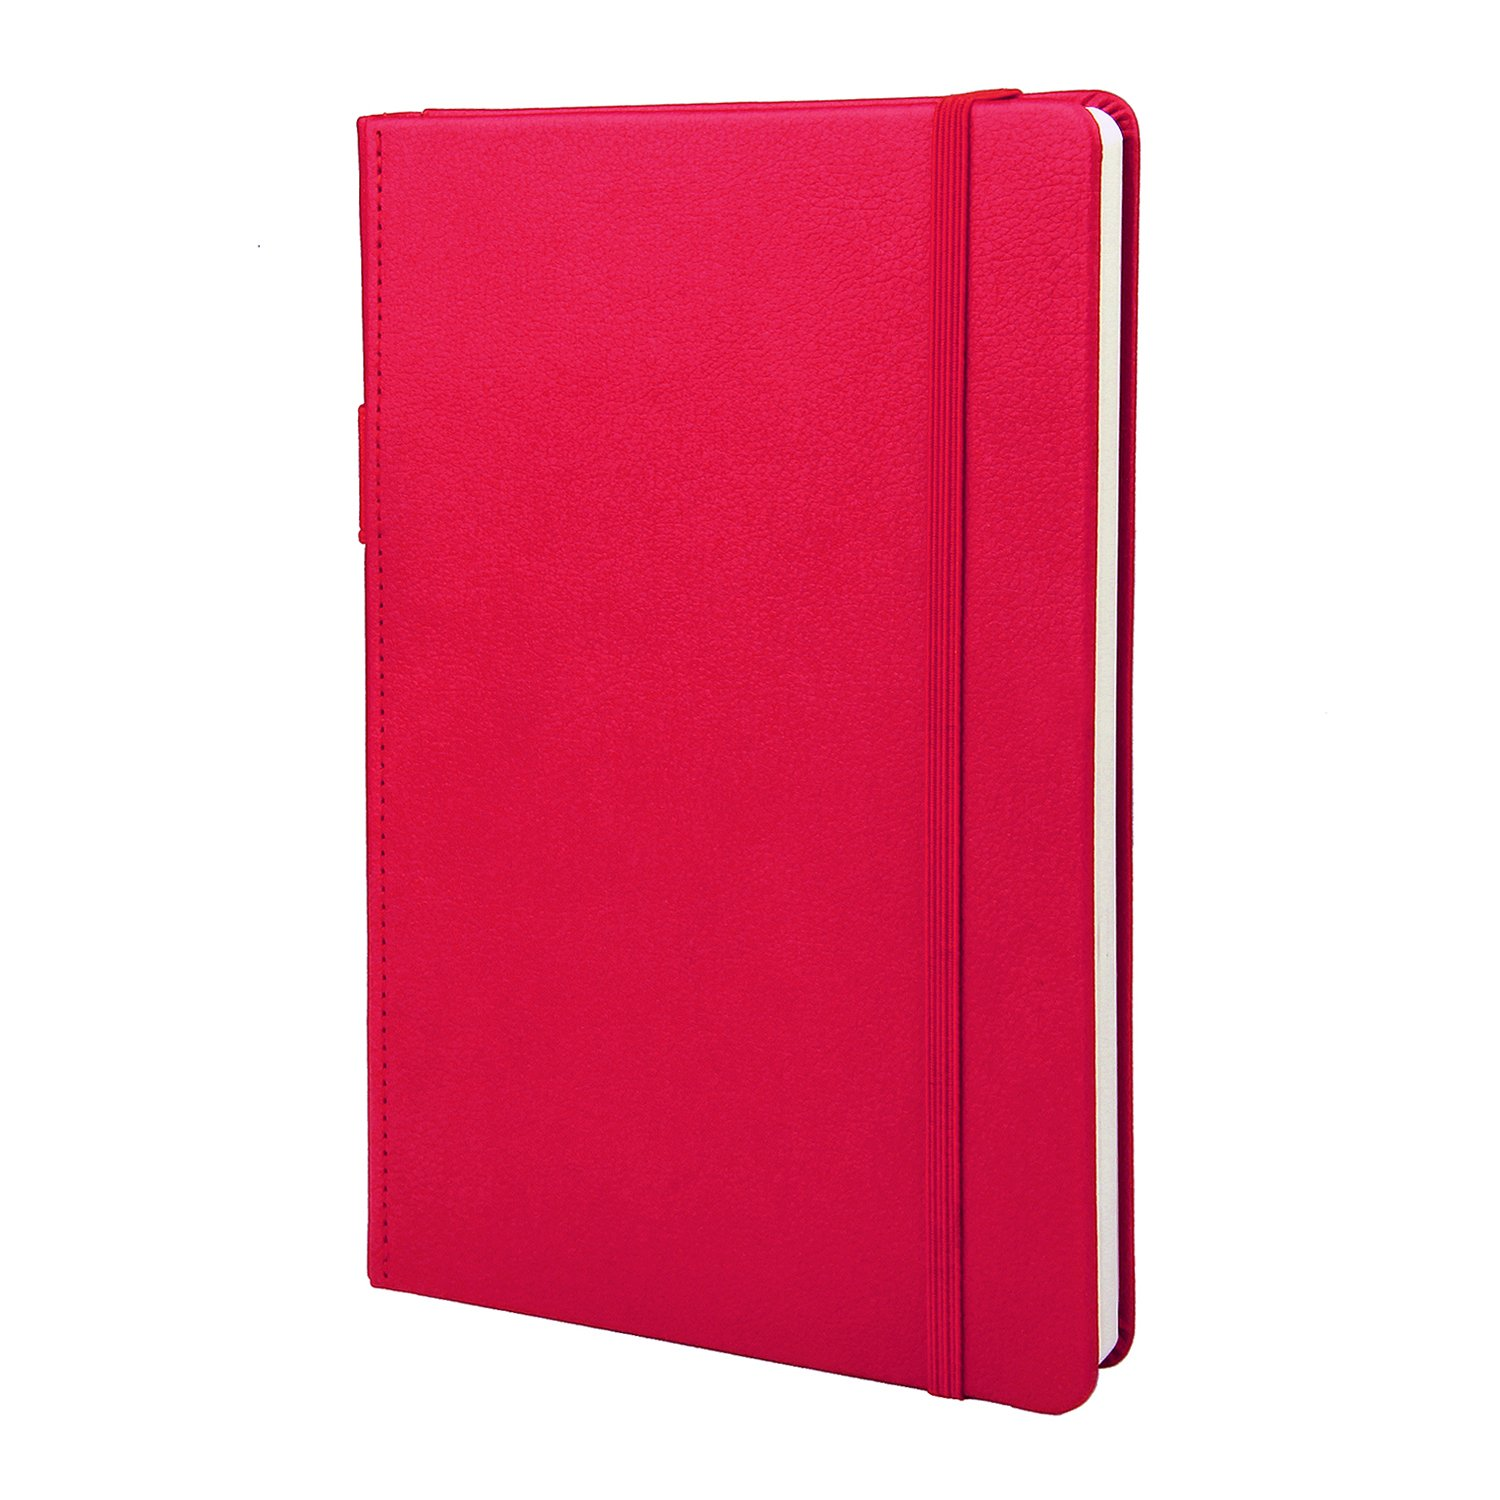 Thick Paper Ruled Classic Hardcover Journal, Notebooks and Journals with Pen Loop and Pages Dividers, Pocket, Calendar A5 Meeting Training Planner (8.3x5.1 In) Red